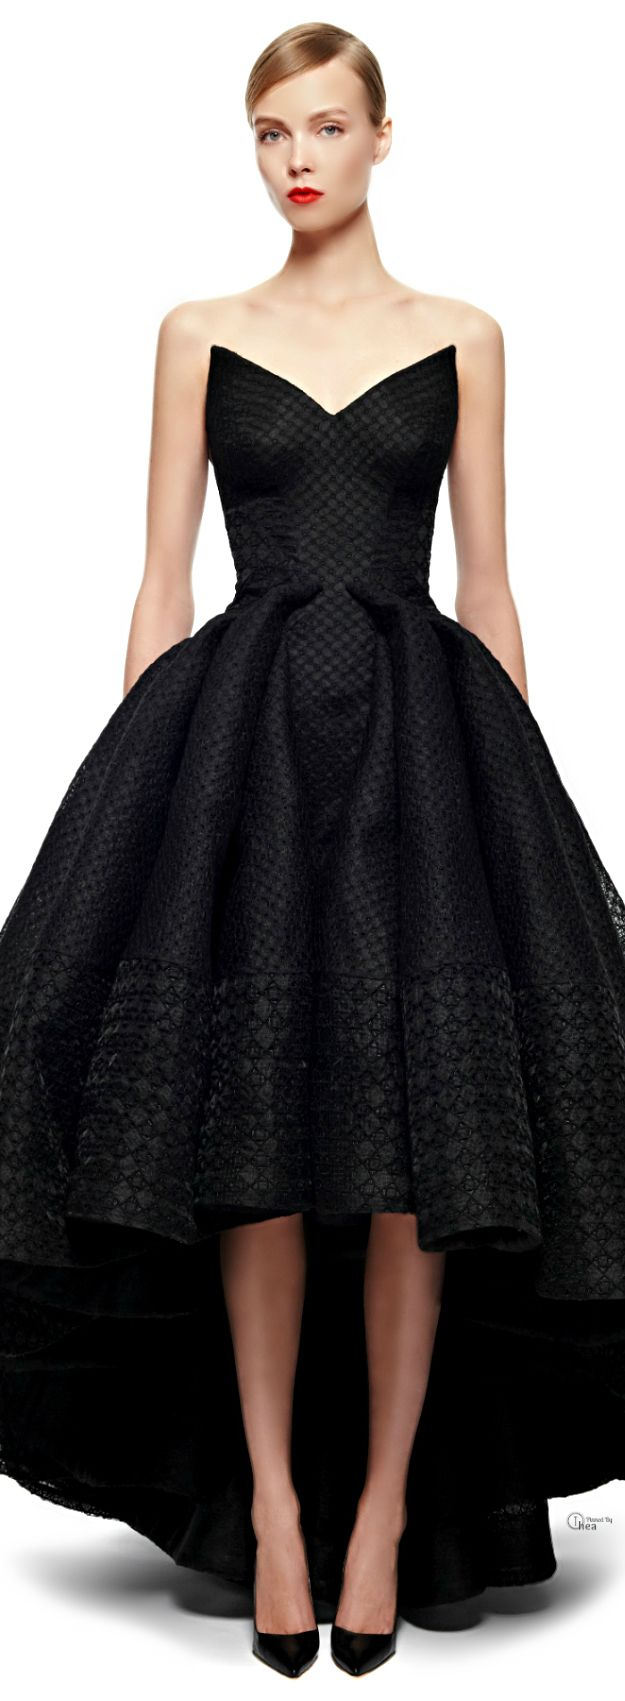 Little black dress for wedding party   best black is black images on Pinterest  Black gowns Party